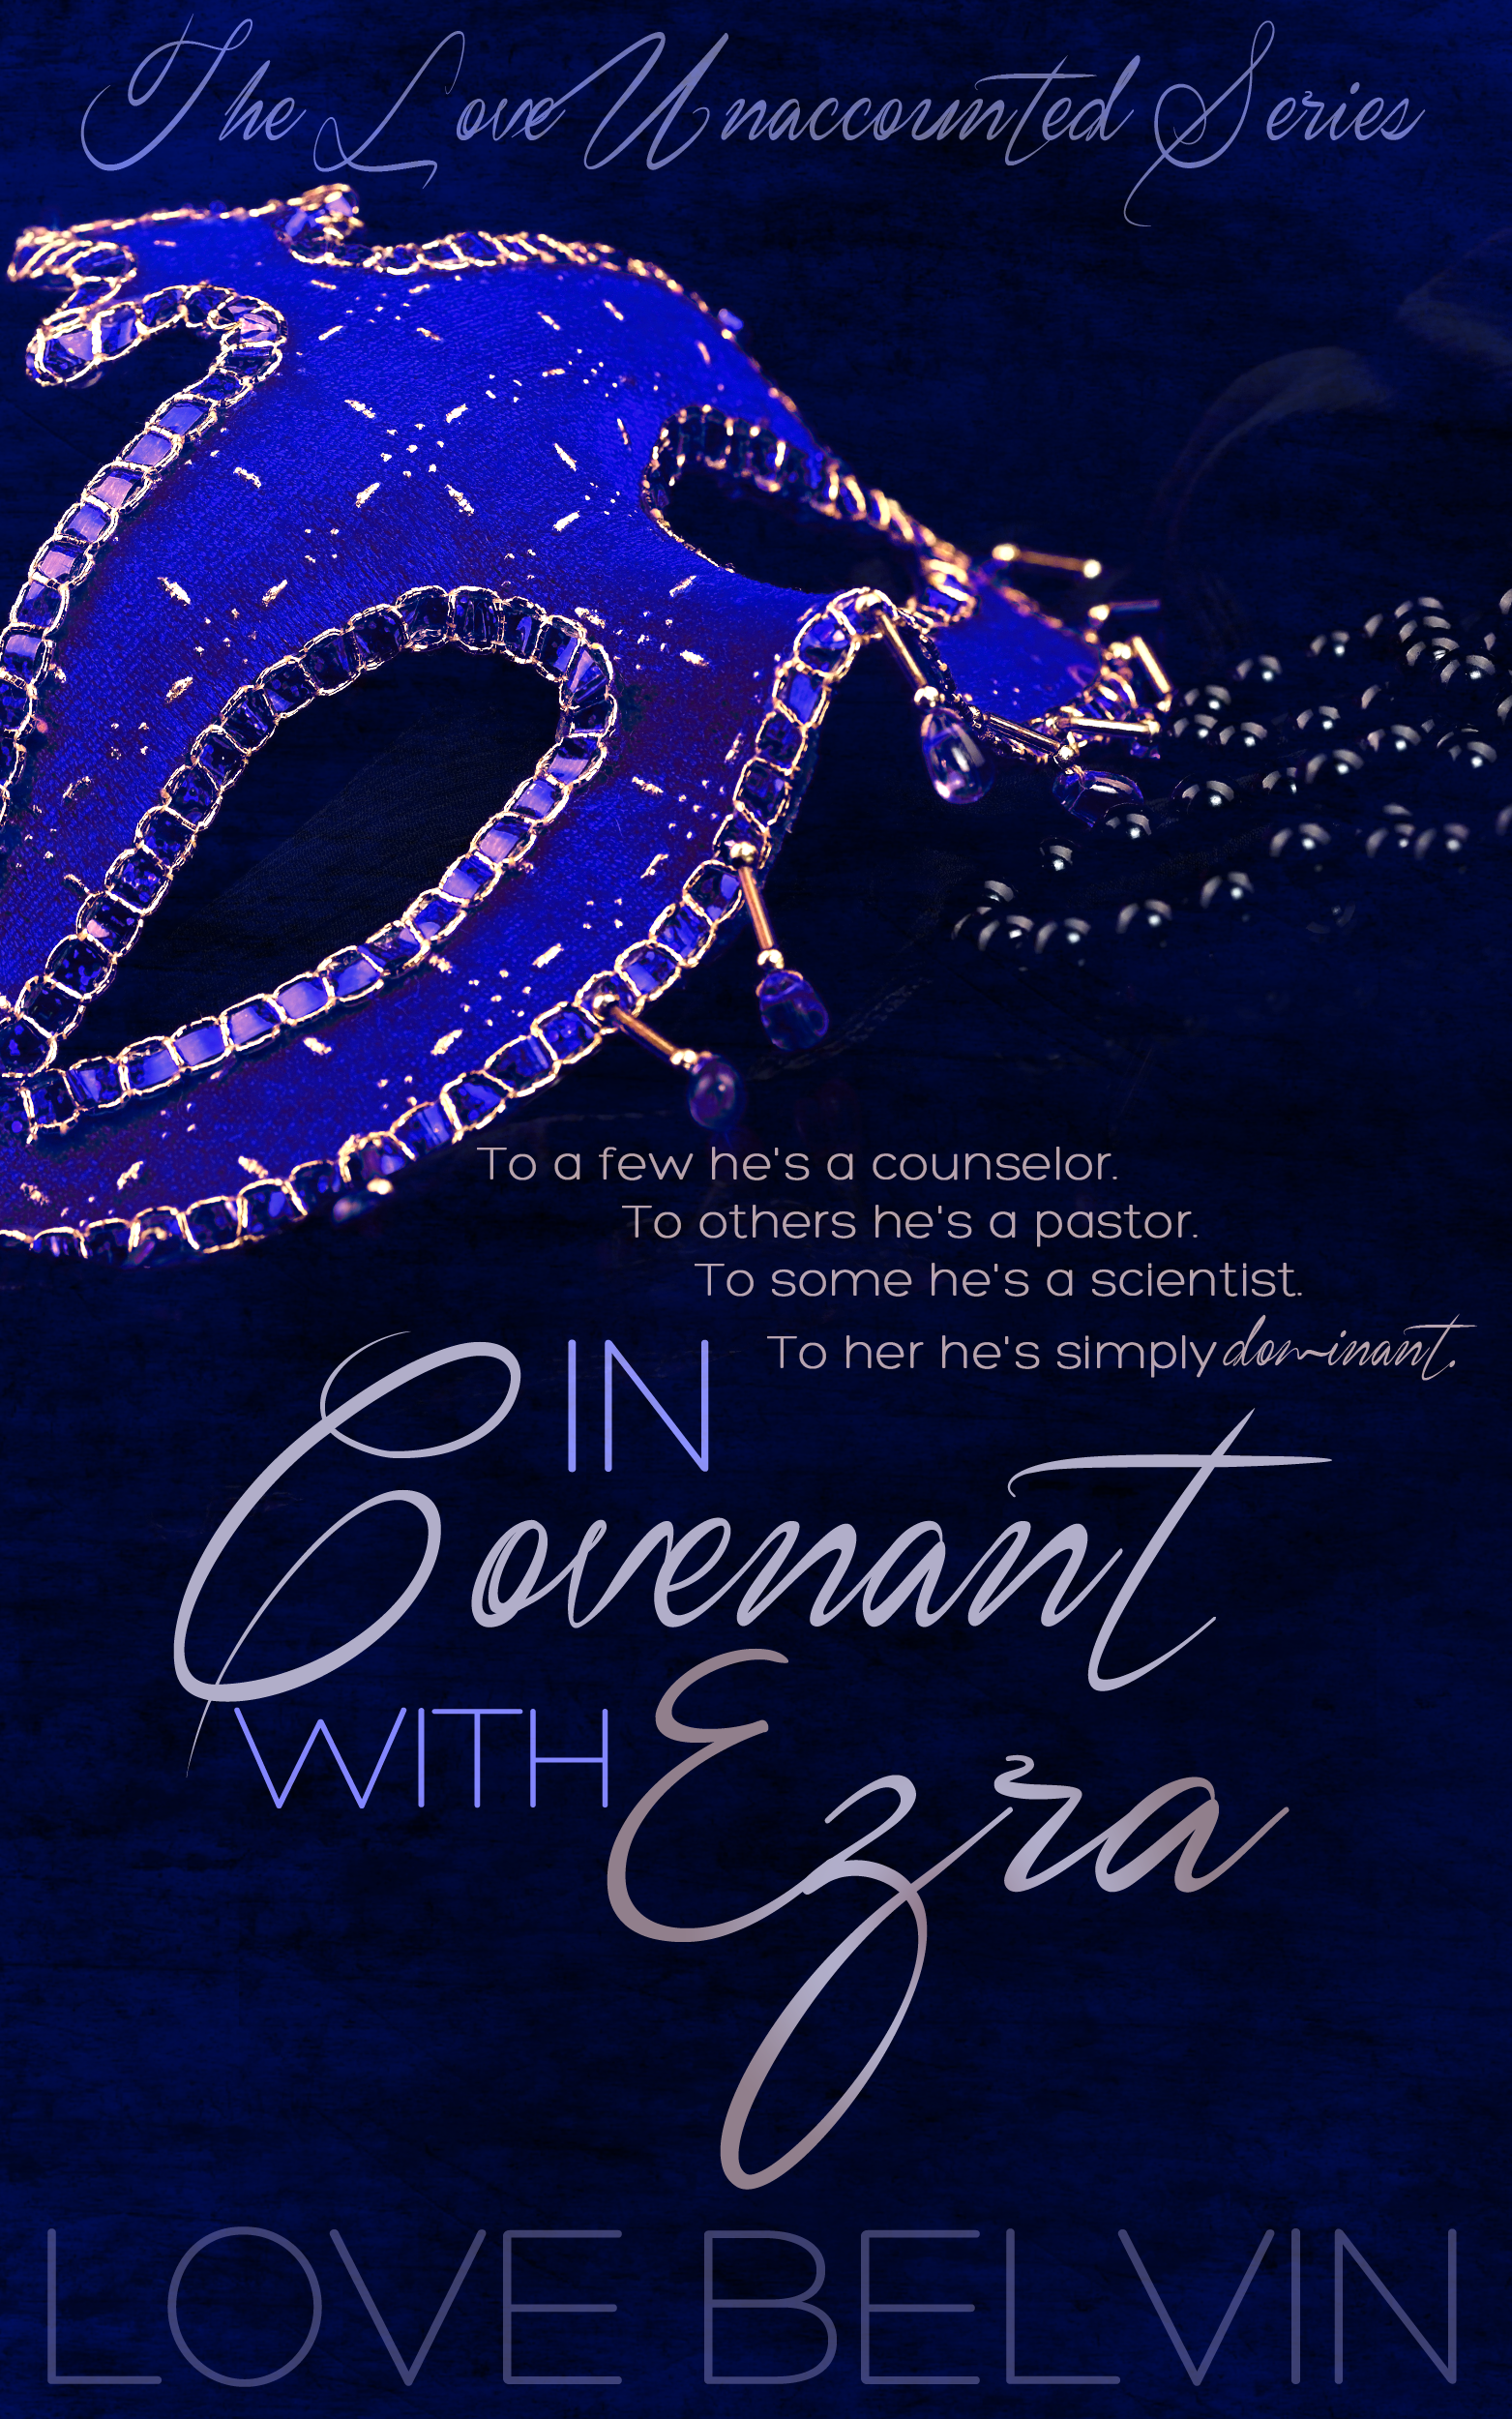 In Covenant with Ezra (book 1 of L.U.)